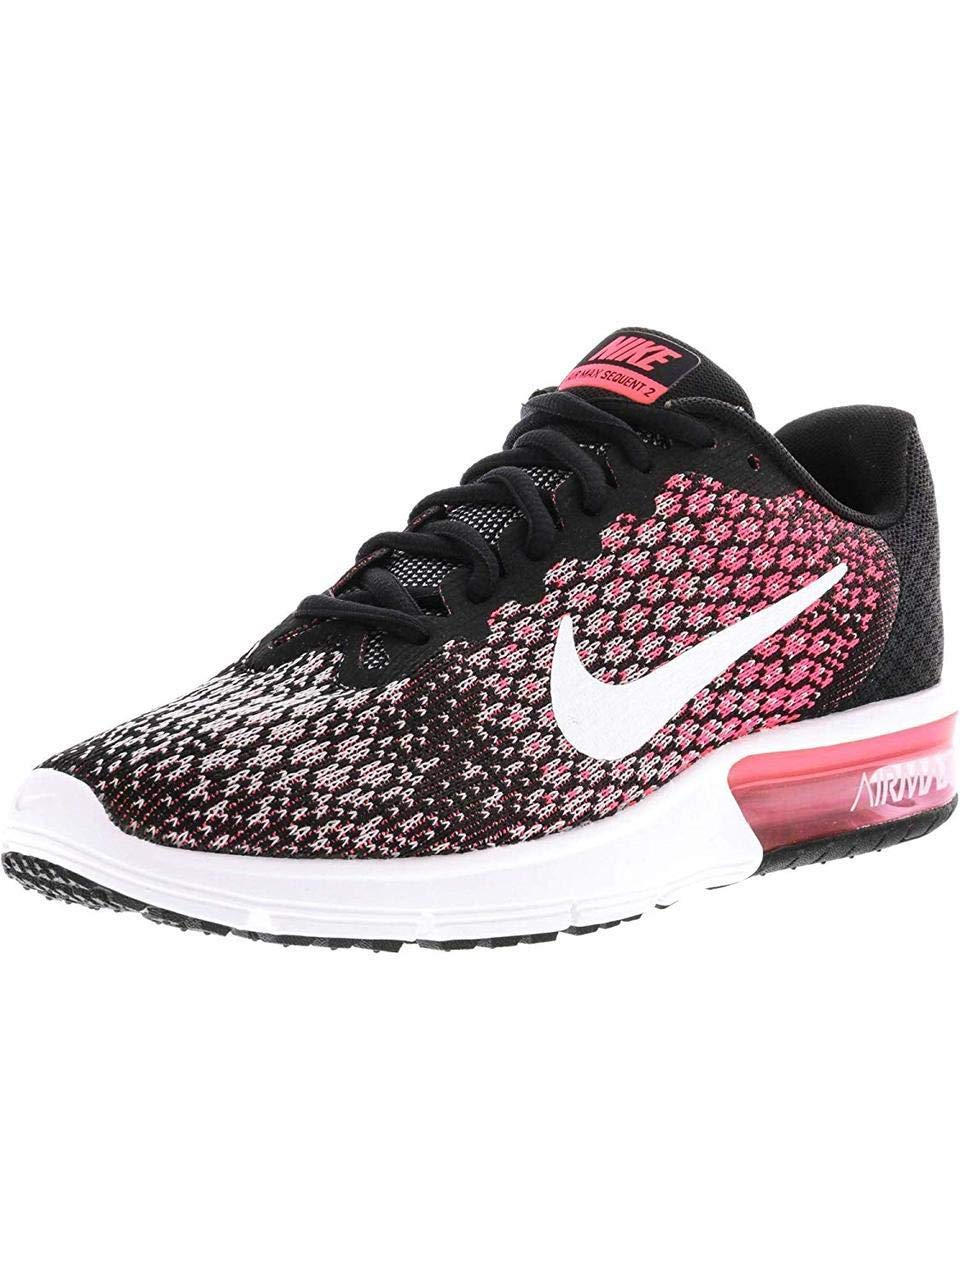 82bb885aa1 Galleon - NIKE Womens Air Max Sequent 2 Running Shoes Black/White/Racer  Pink 852465-004 Size 7